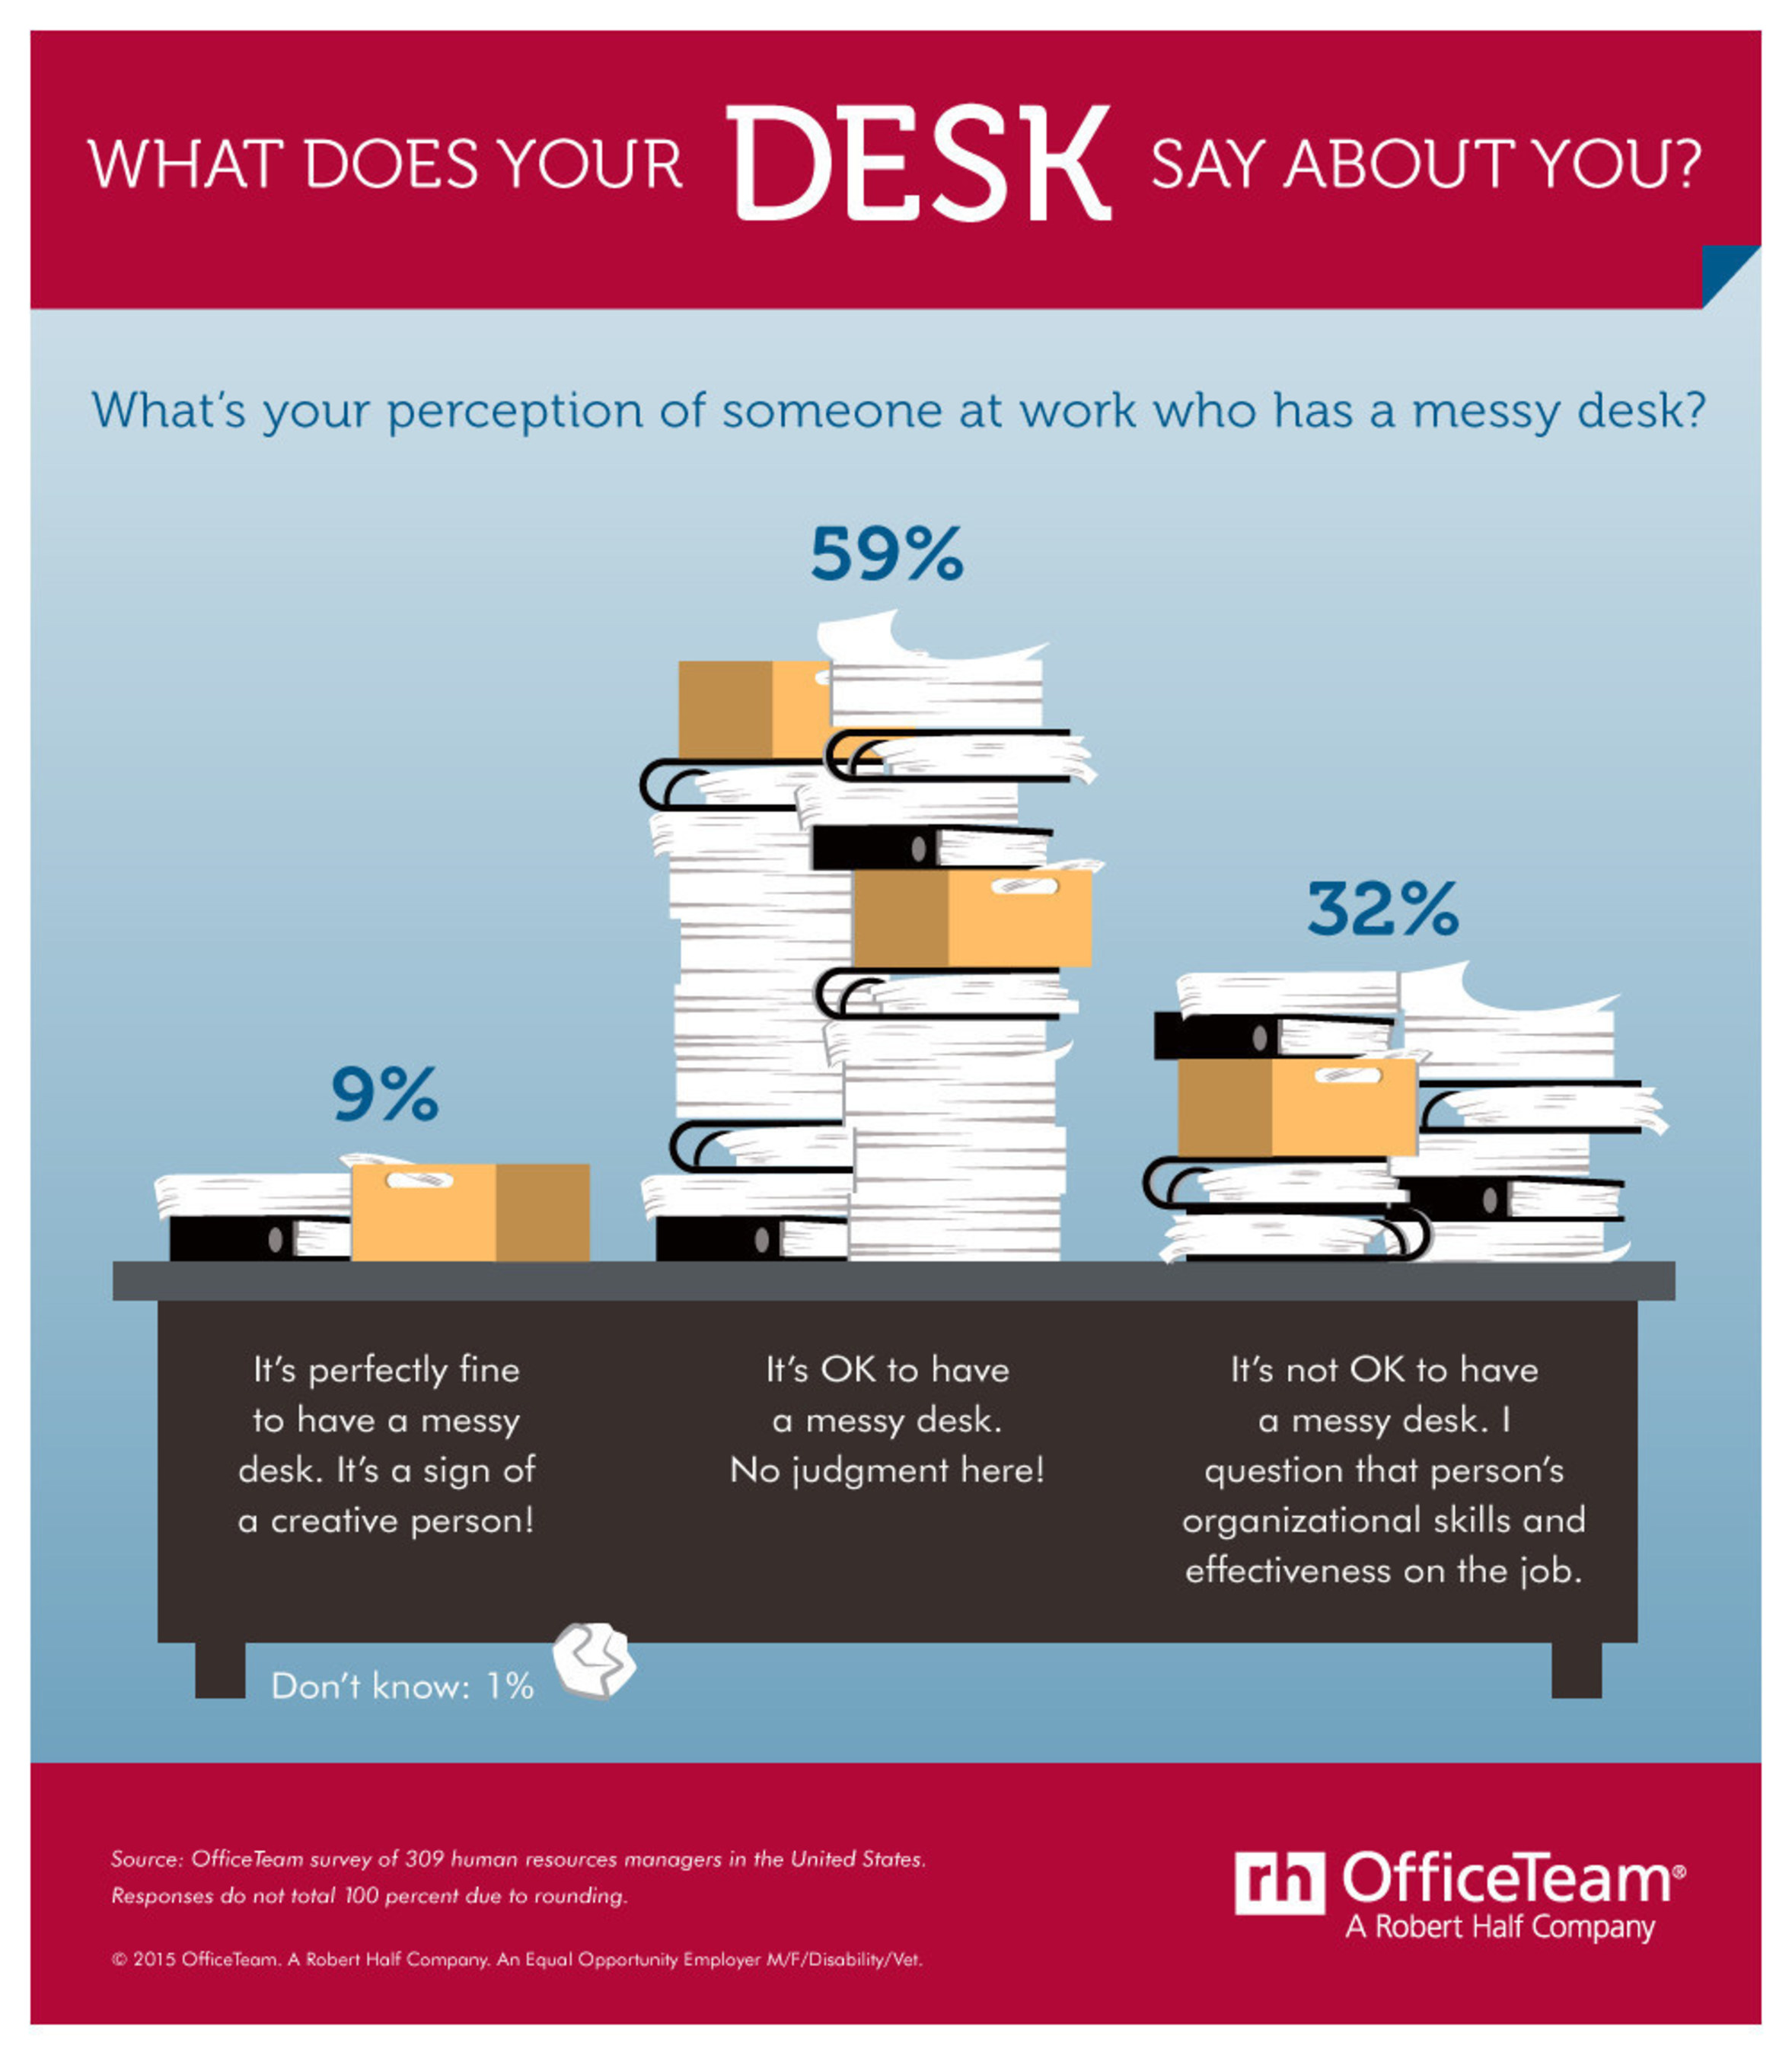 Nearly two-thirds (68 percent) of HR managers felt it's at least somewhat acceptable to have a messy desk at work. In fact, 9 percent even said it's a sign of a creative person. However, nearly one-third (32 percent) stated they would question an employee's organizational skills and effectiveness if that person had an unkempt workspace.